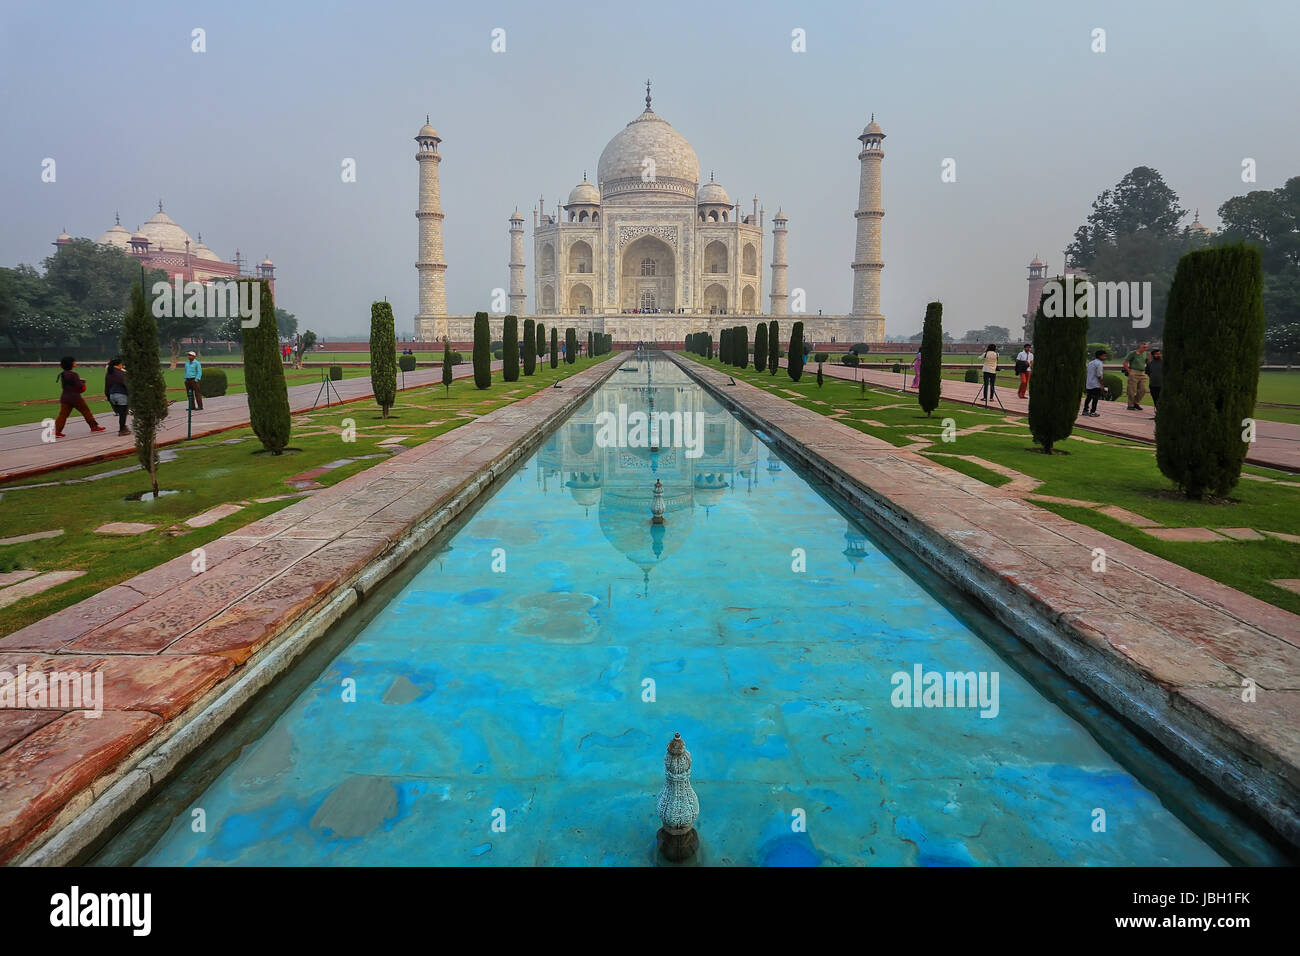 Taj Mahal in early morning for, Agra, Uttar Pradesh, India. It was build in 1632 by Emperor Shah Jahan as a memorial - Stock Image